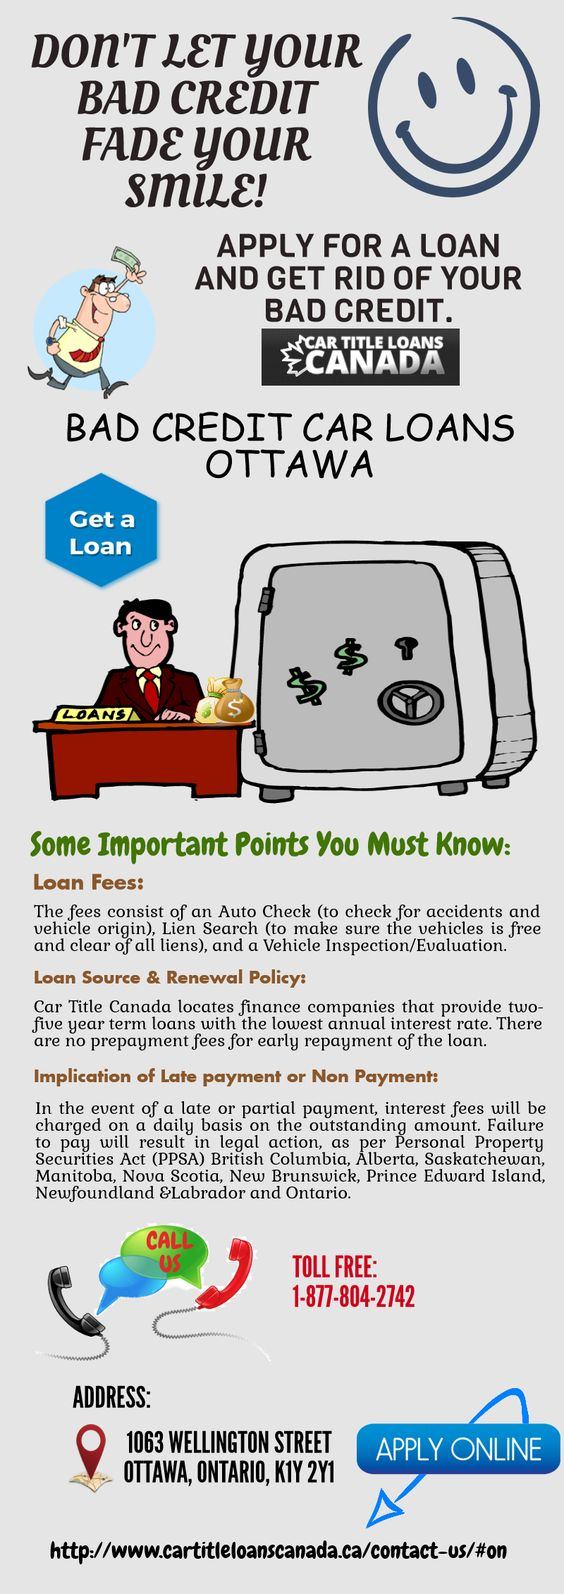 Payday loans for bad credit not brokers picture 1